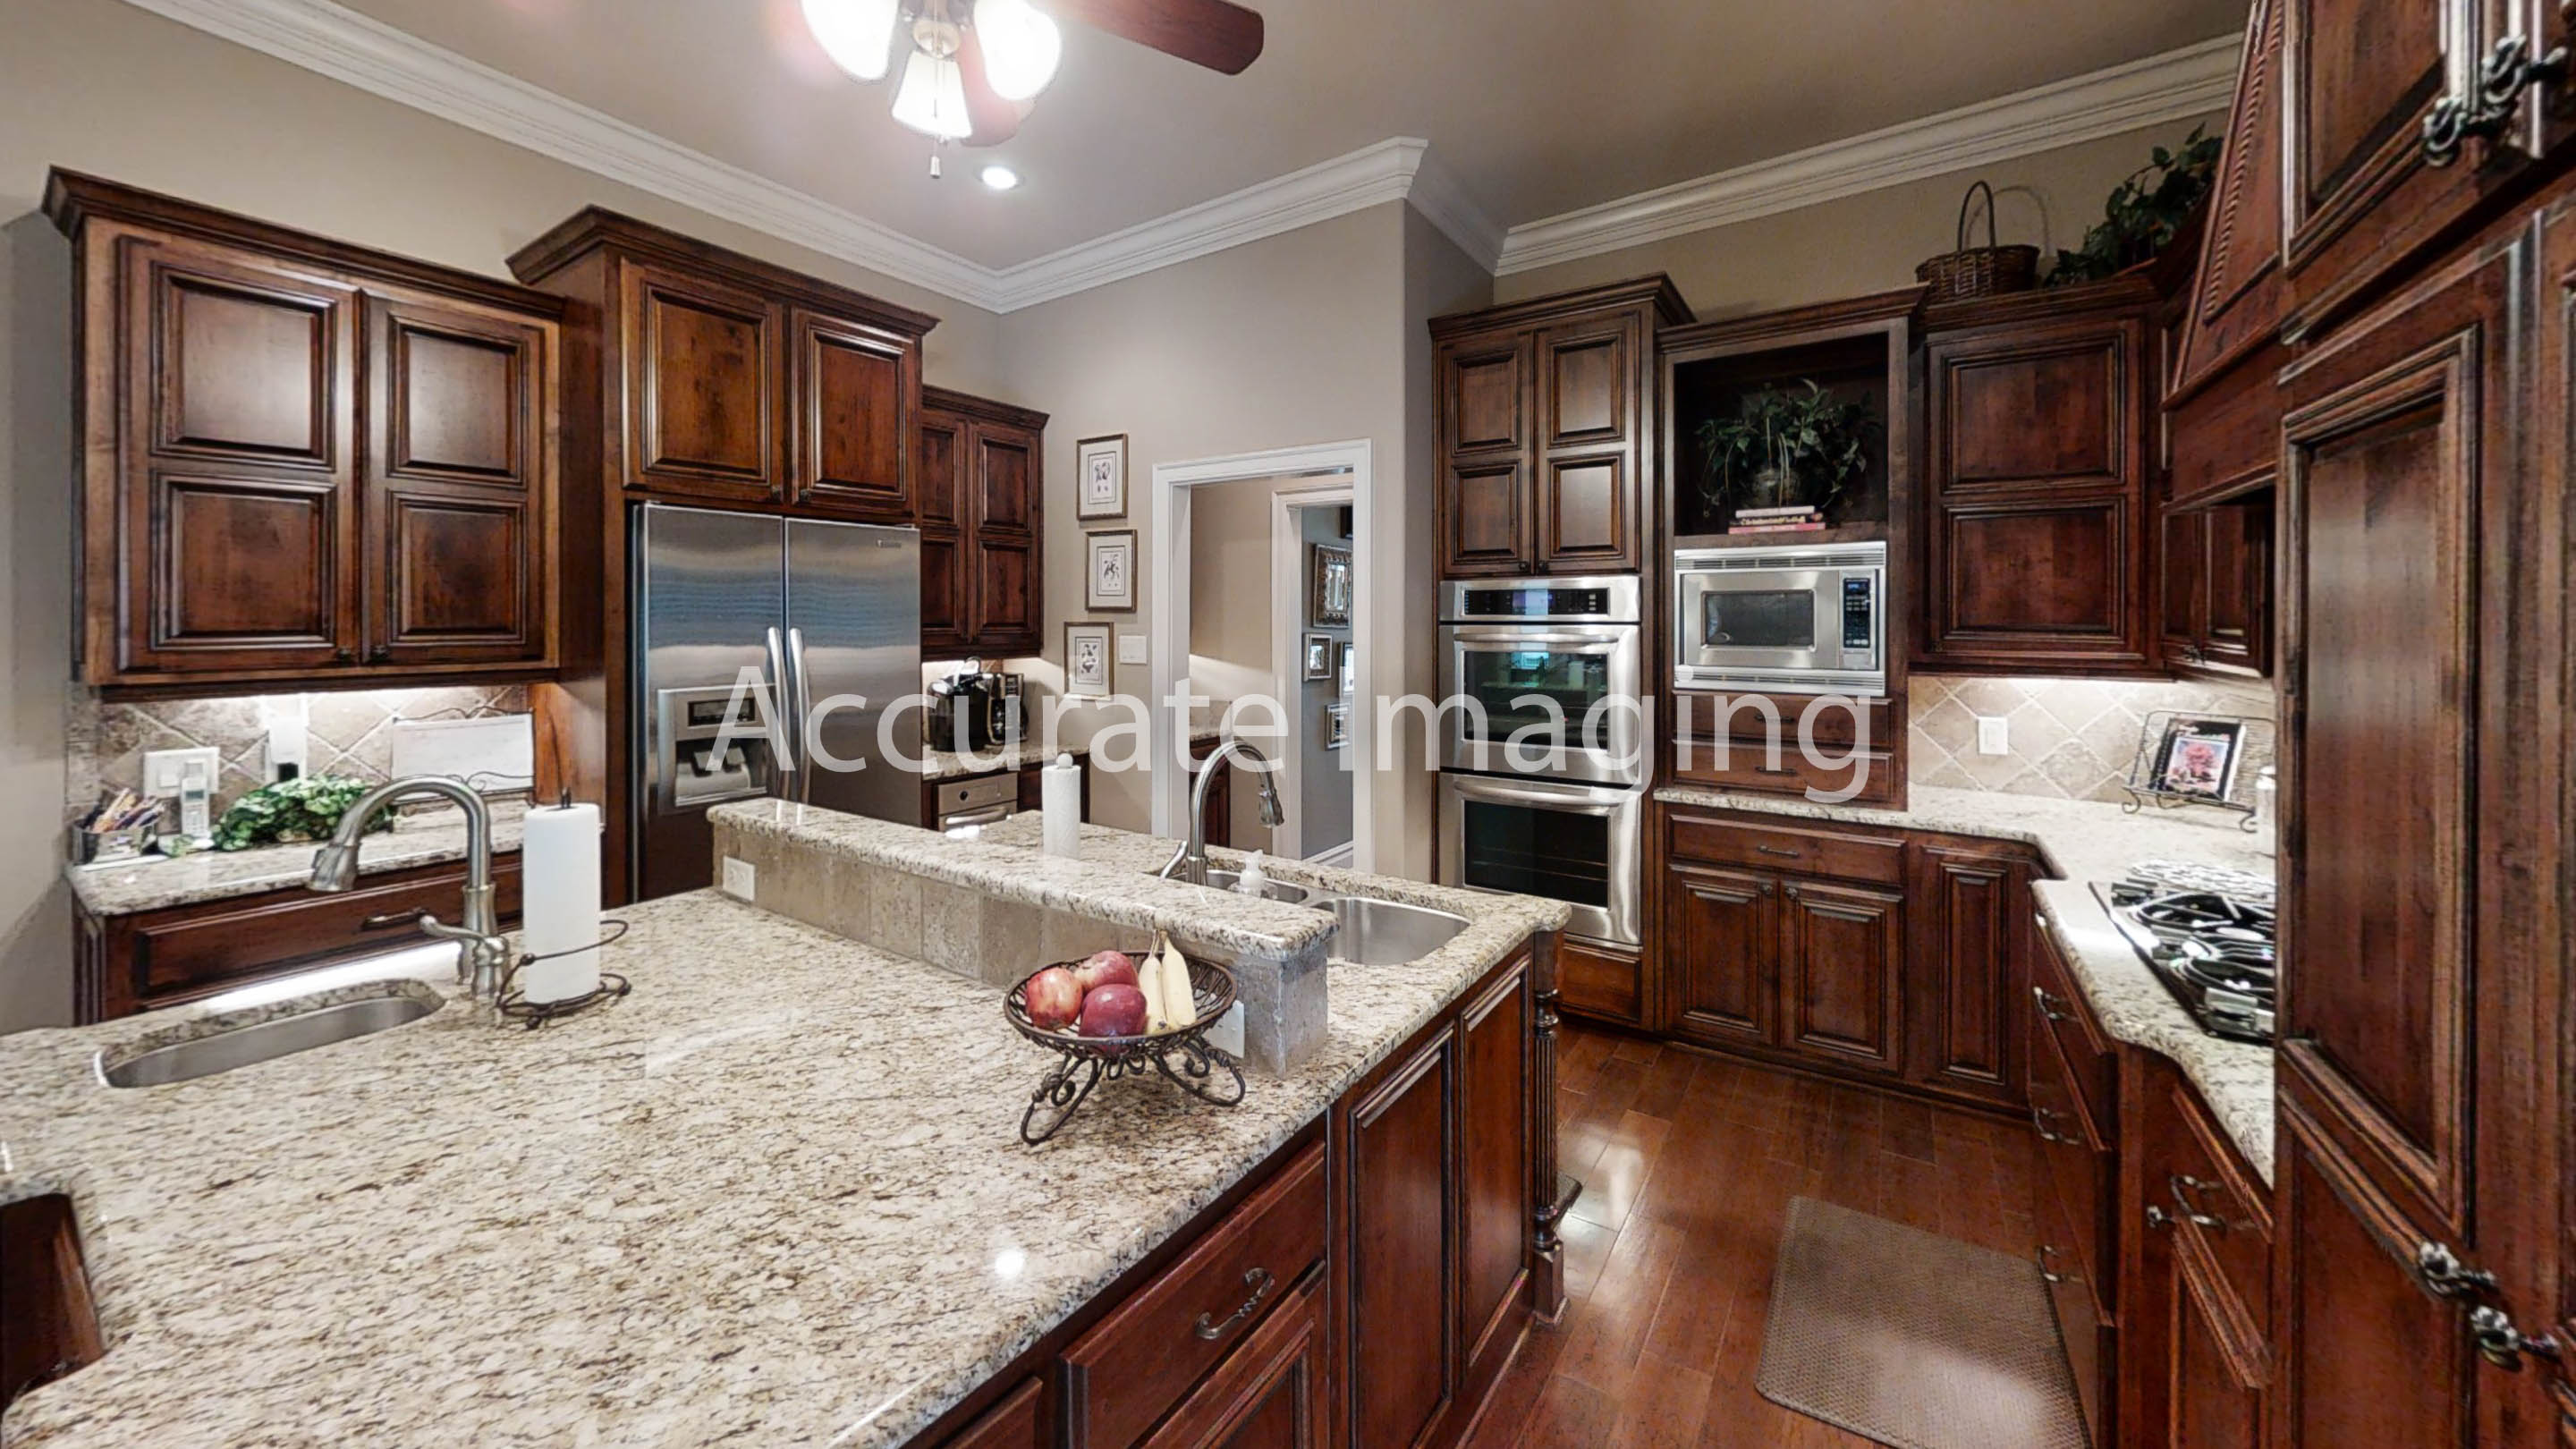 670-Huntington-Kitchen(1)